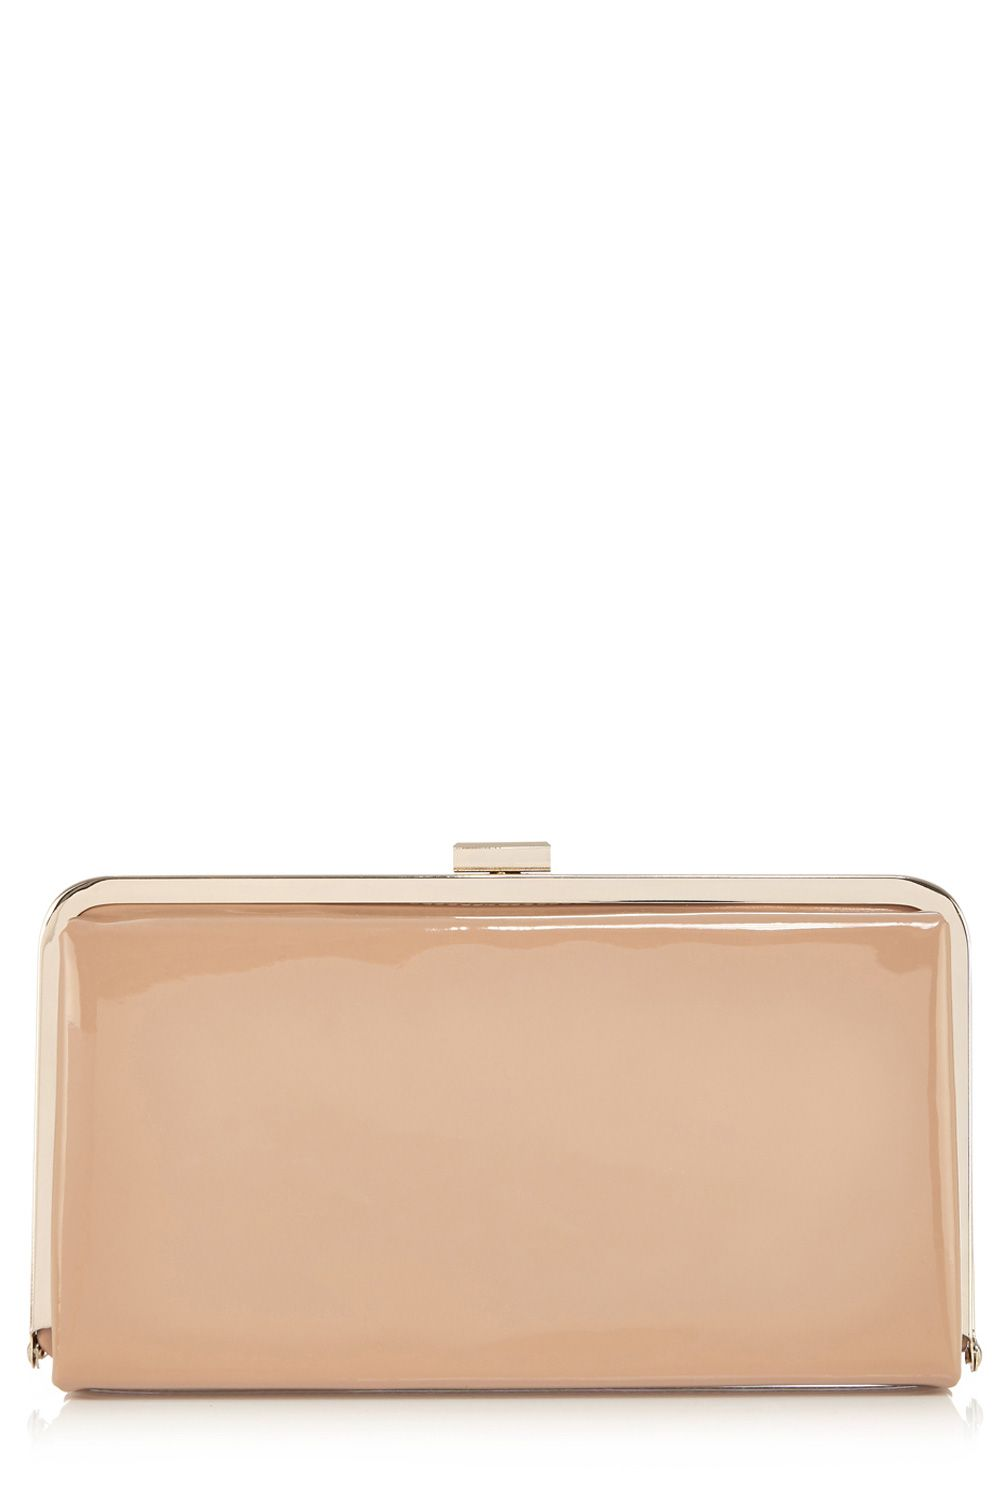 Ruby frame clutch bag